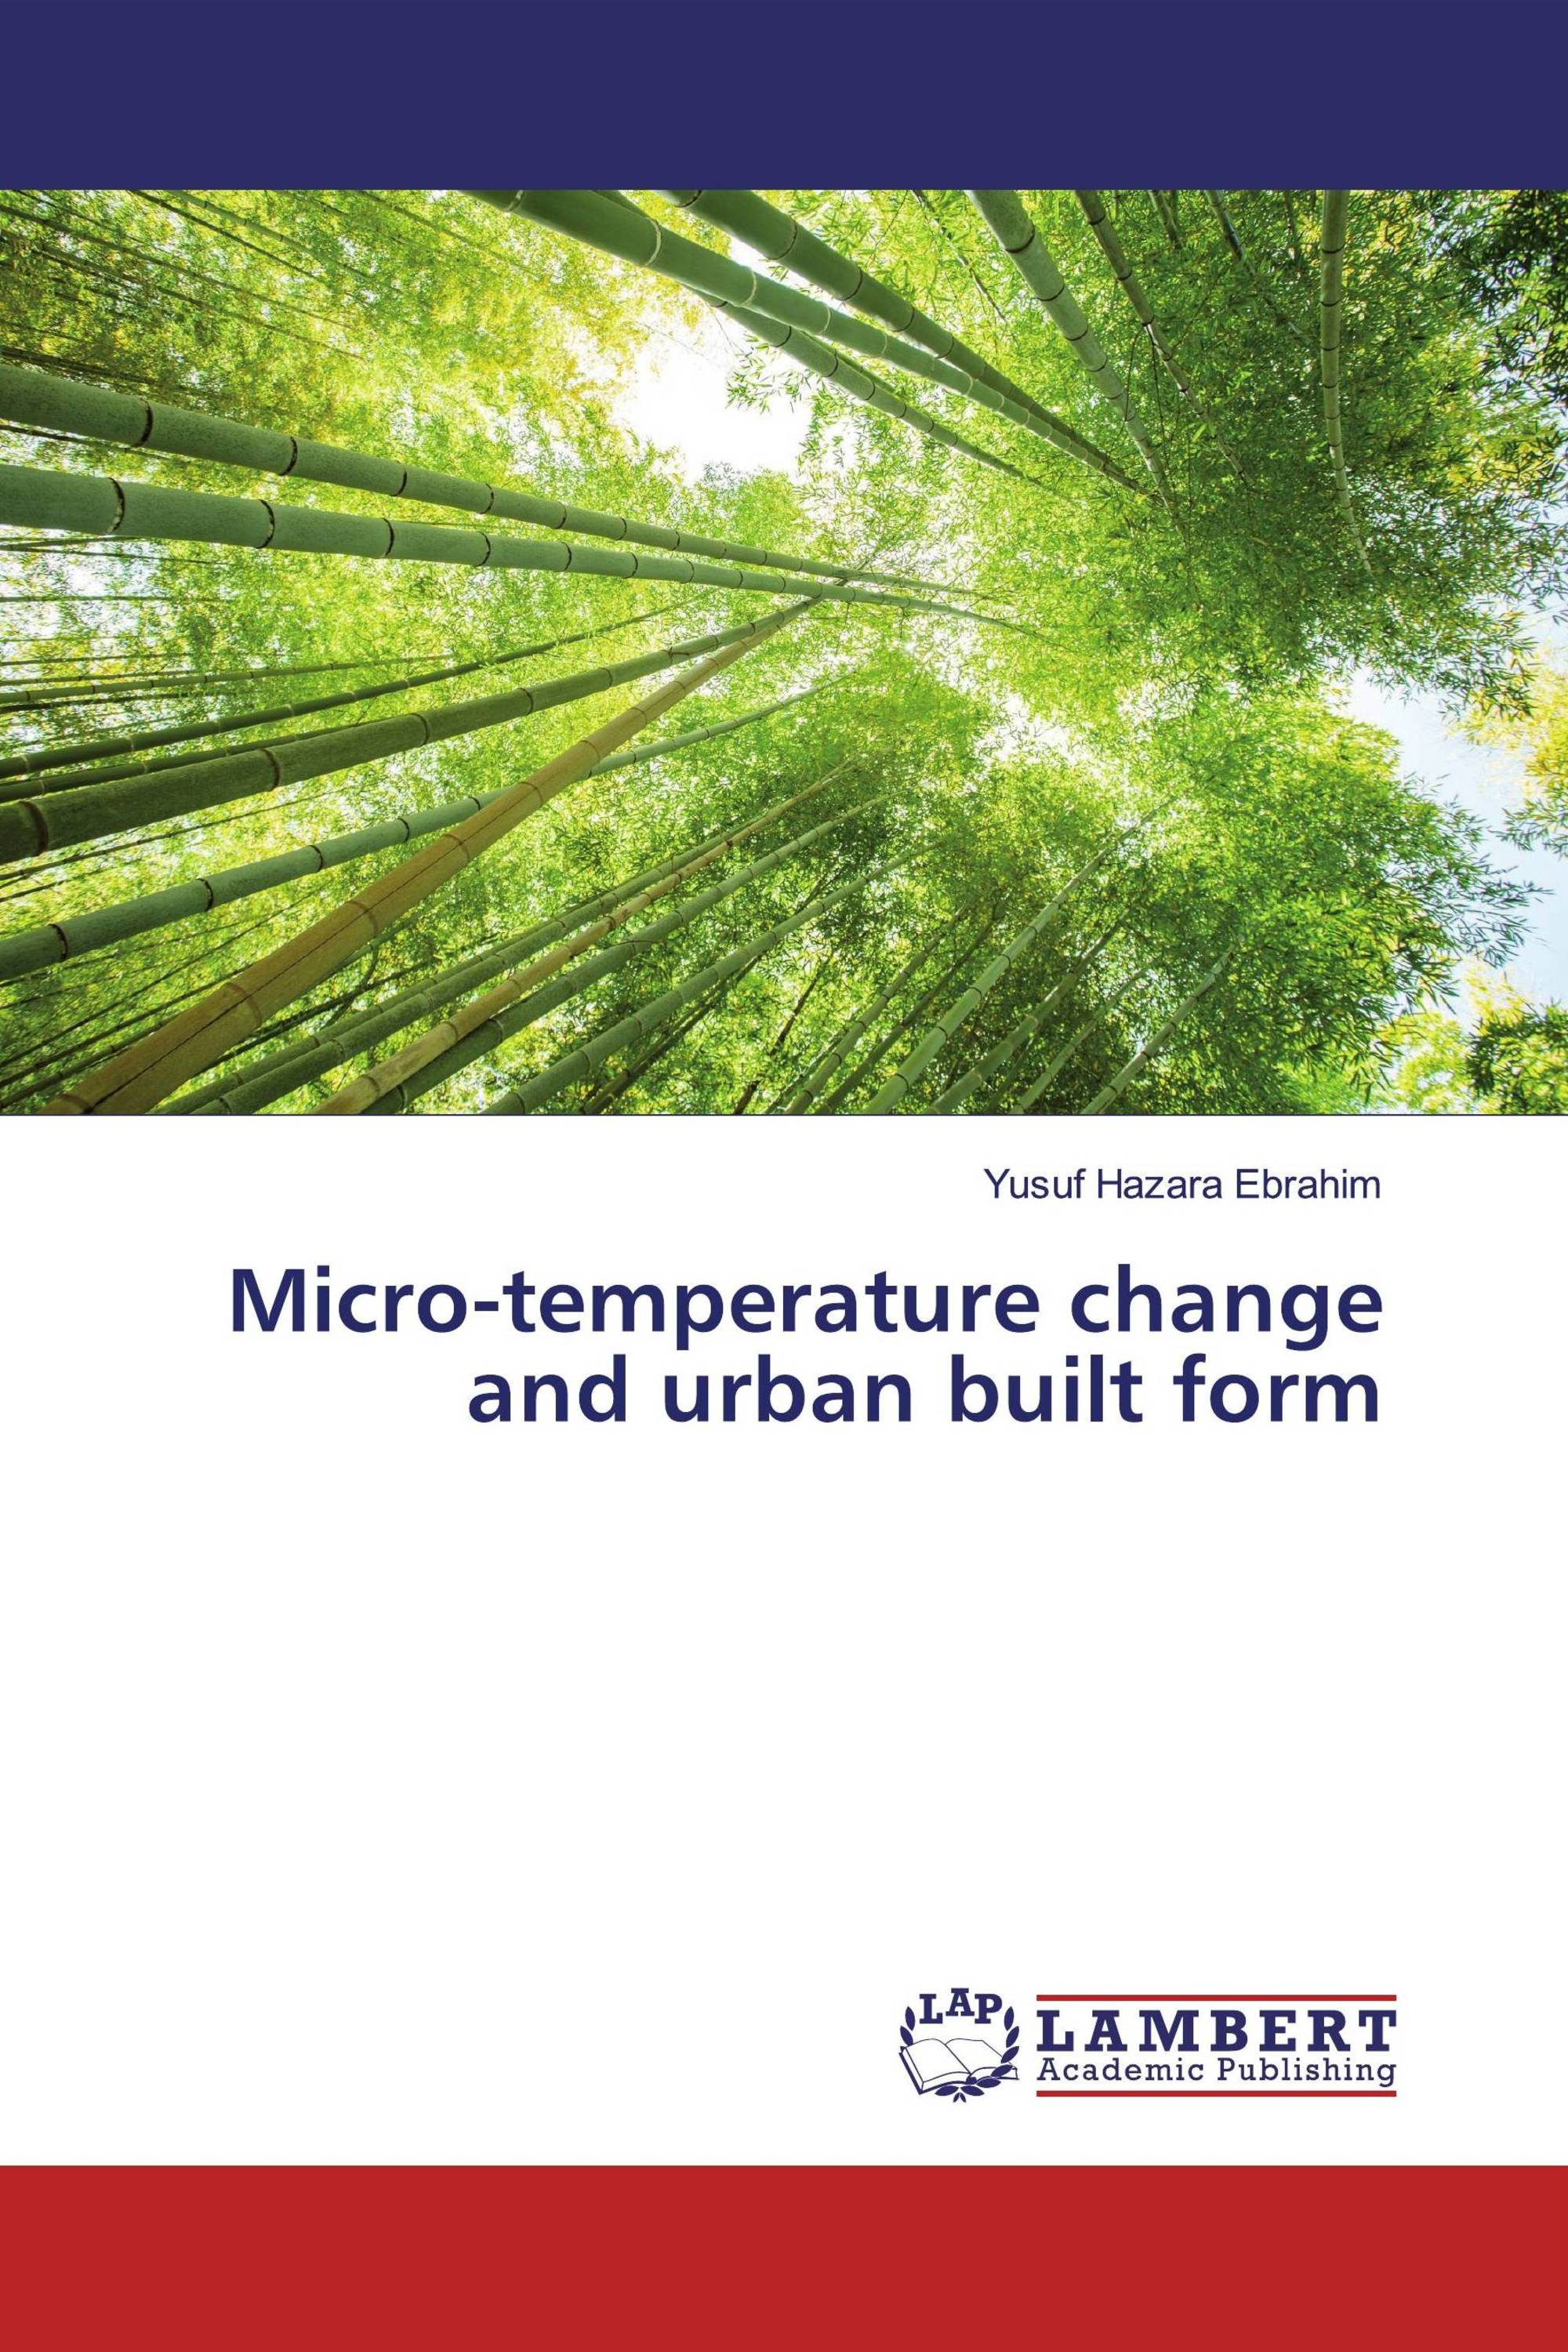 Micro-temperature change and urban built form